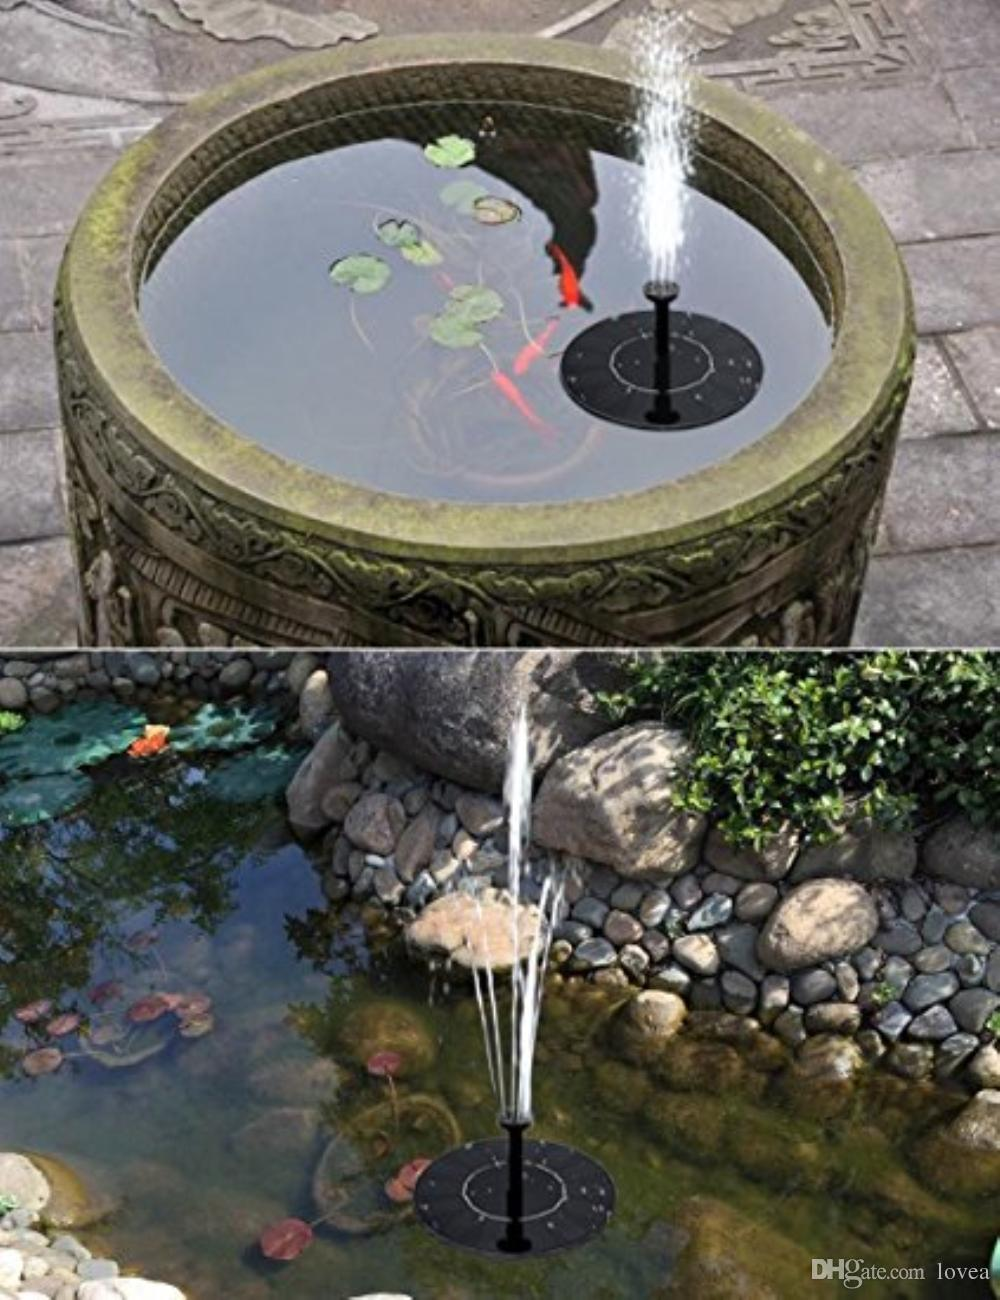 Prodigious Battery Upgraded Submersible Solar Fountain Pump Bird Lawn Solarfountain Solar Fountain Pump Battery Upgraded Submersible Solarwater Fountain Panel Kit houzz-03 Solar Fountain Pump